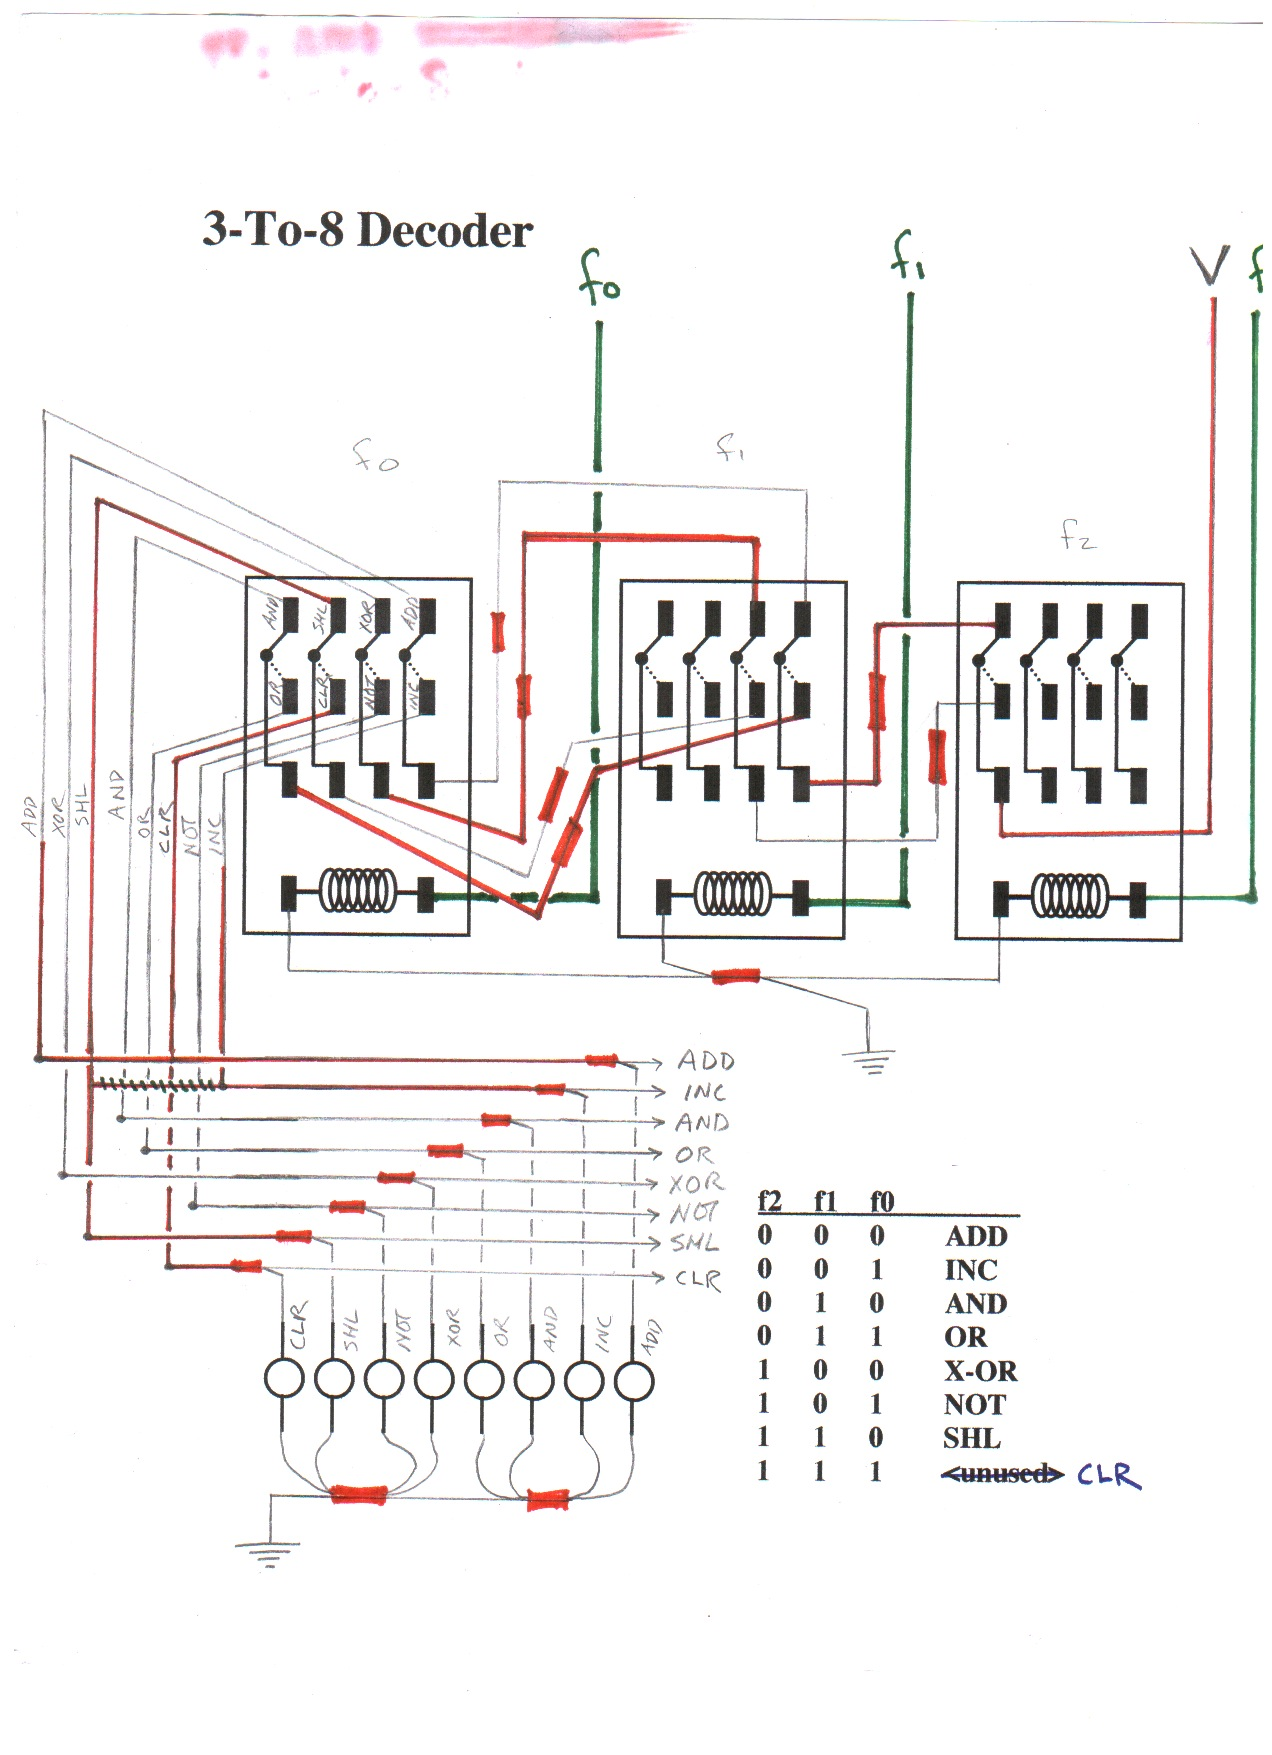 Circuit Diagrams Relay For 3 To 8 Decoder 2